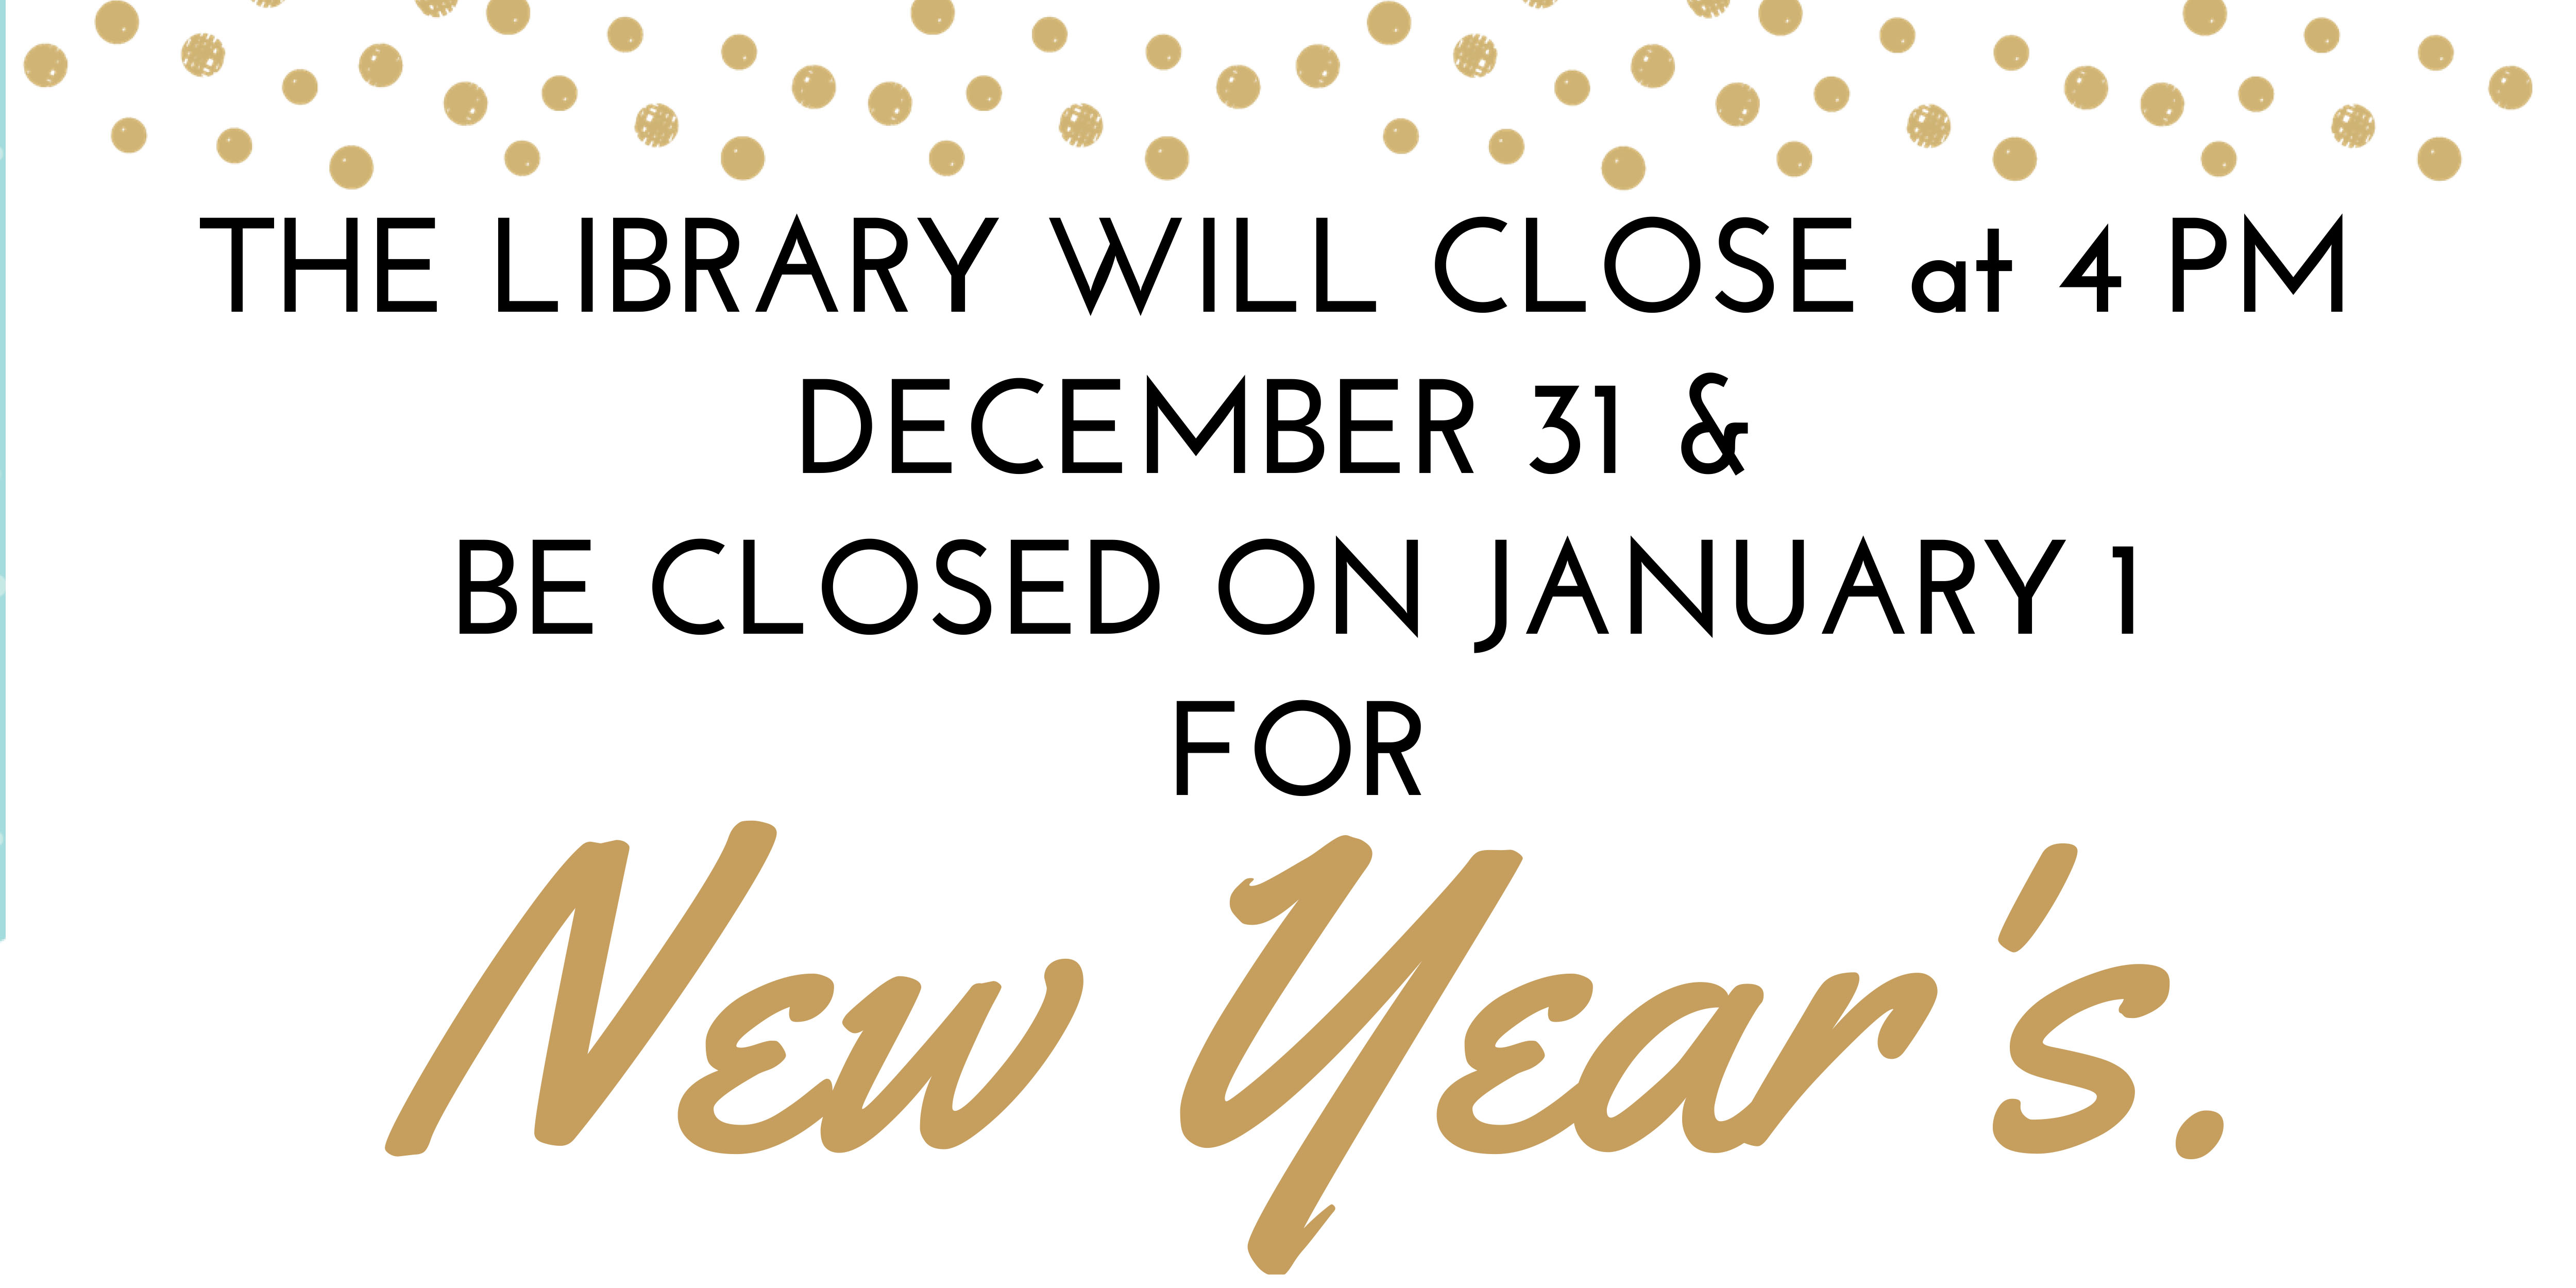 the library will close at 4 pm December 31 and be closed January 1